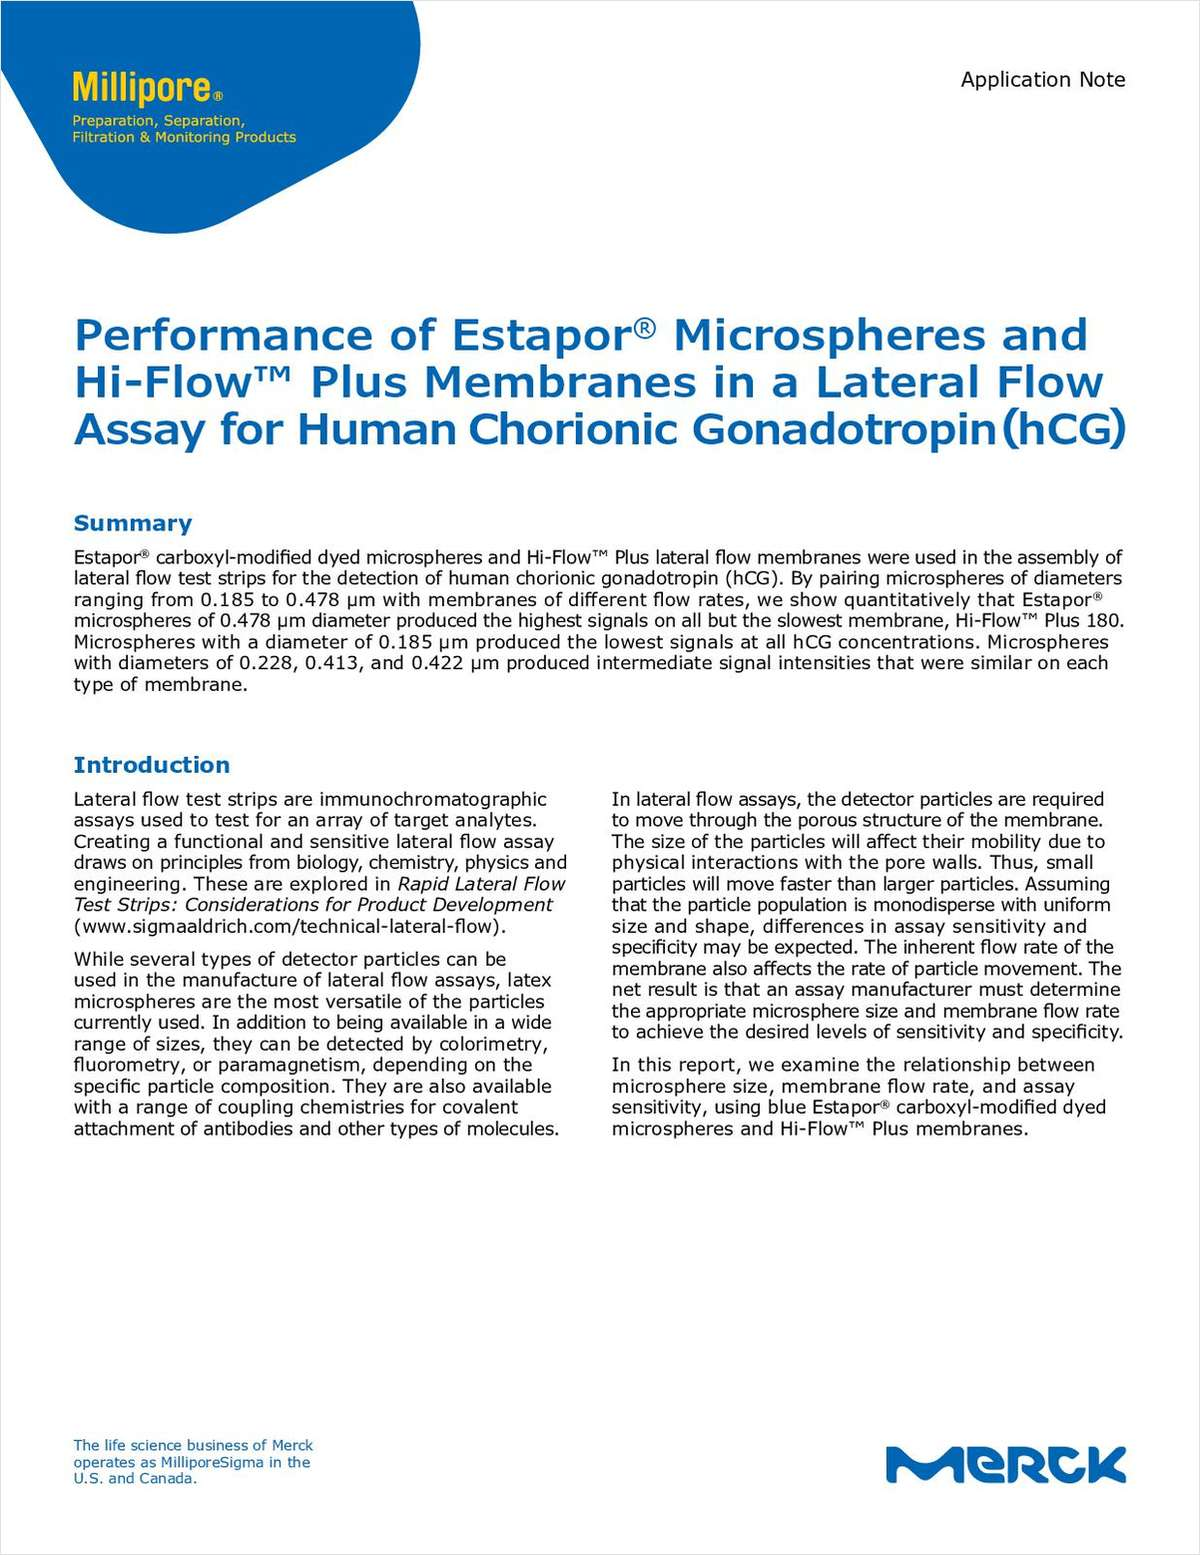 Performance of Estapor Microspheres and Hi-Flow Plus Membranes in a Lateral Flow Assay for Human Chorionic Gonadotropin (hCG)